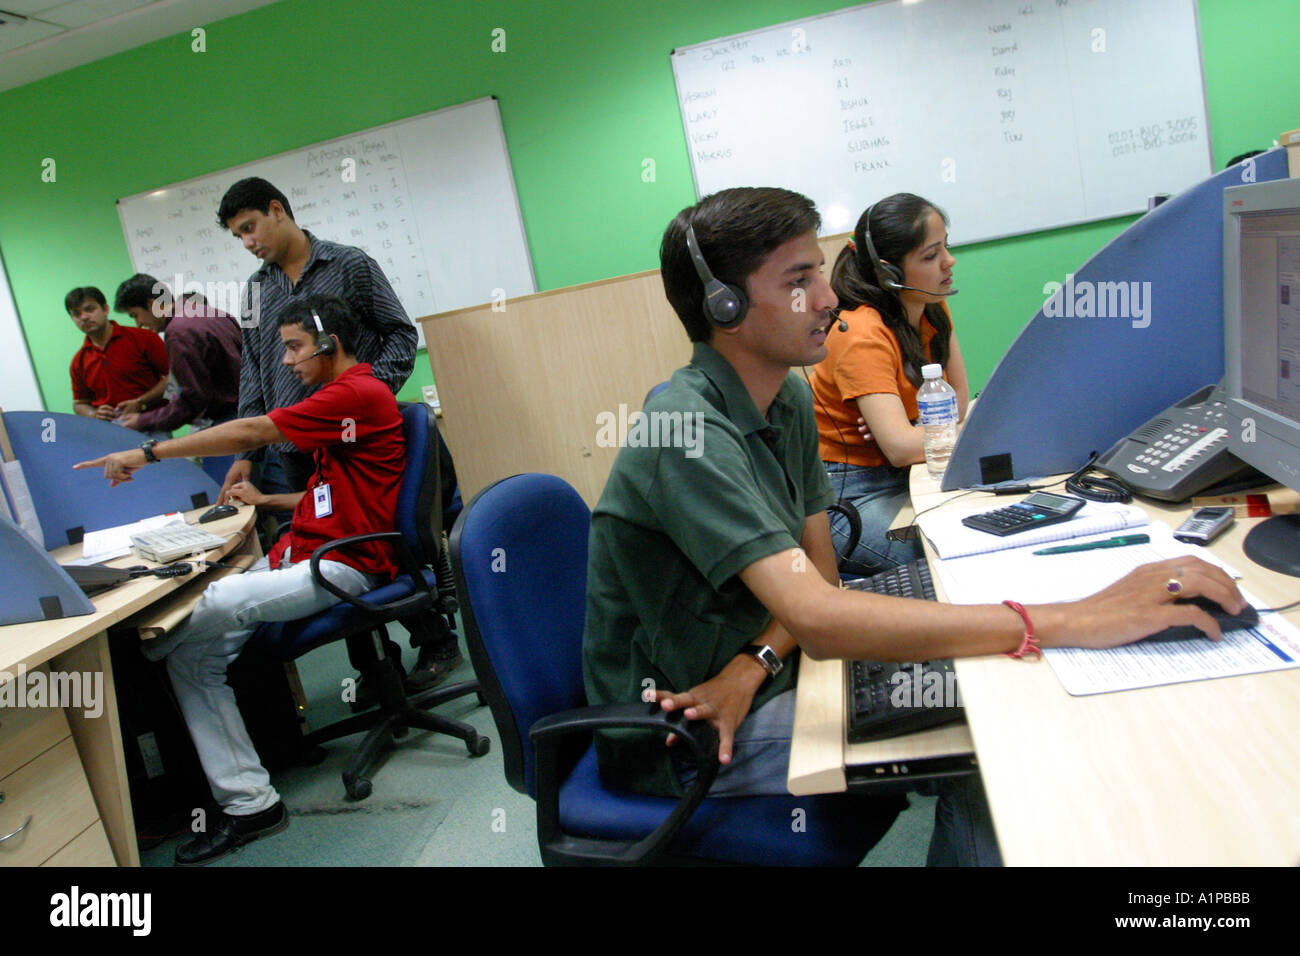 India Office Outsourcing Work Stock Photos & India Office